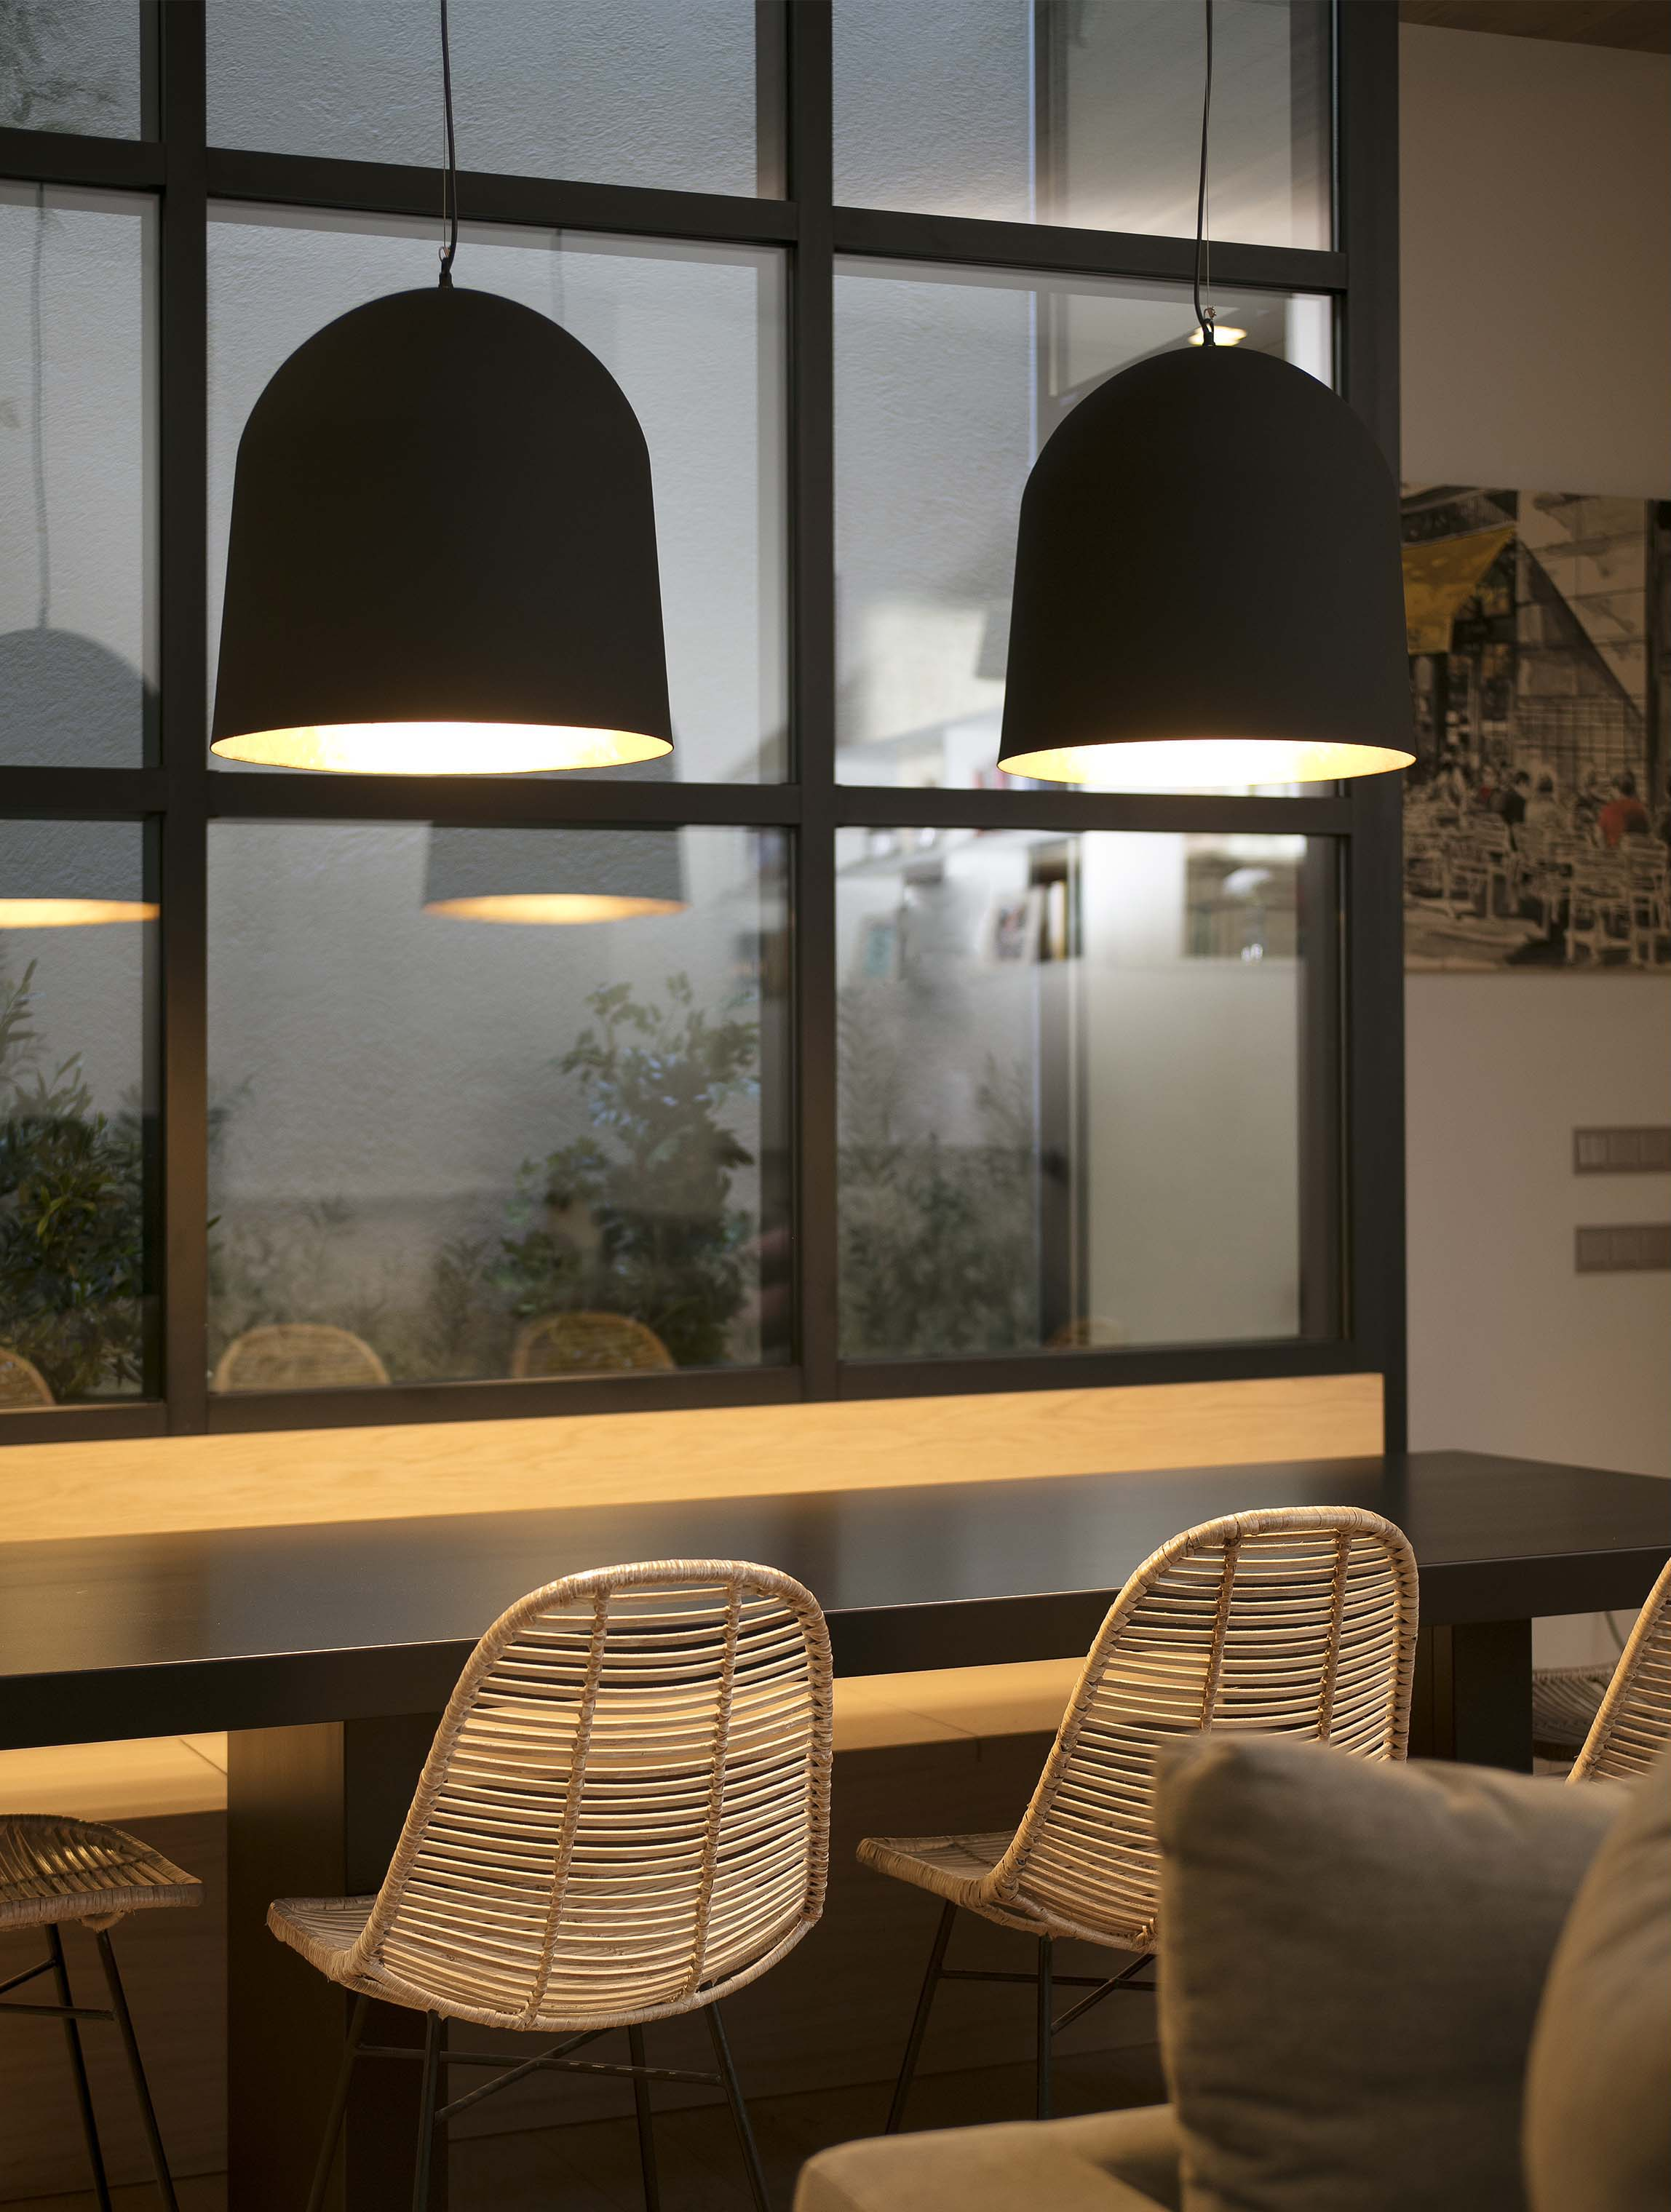 More information of Cráter pendant lamp - Faro